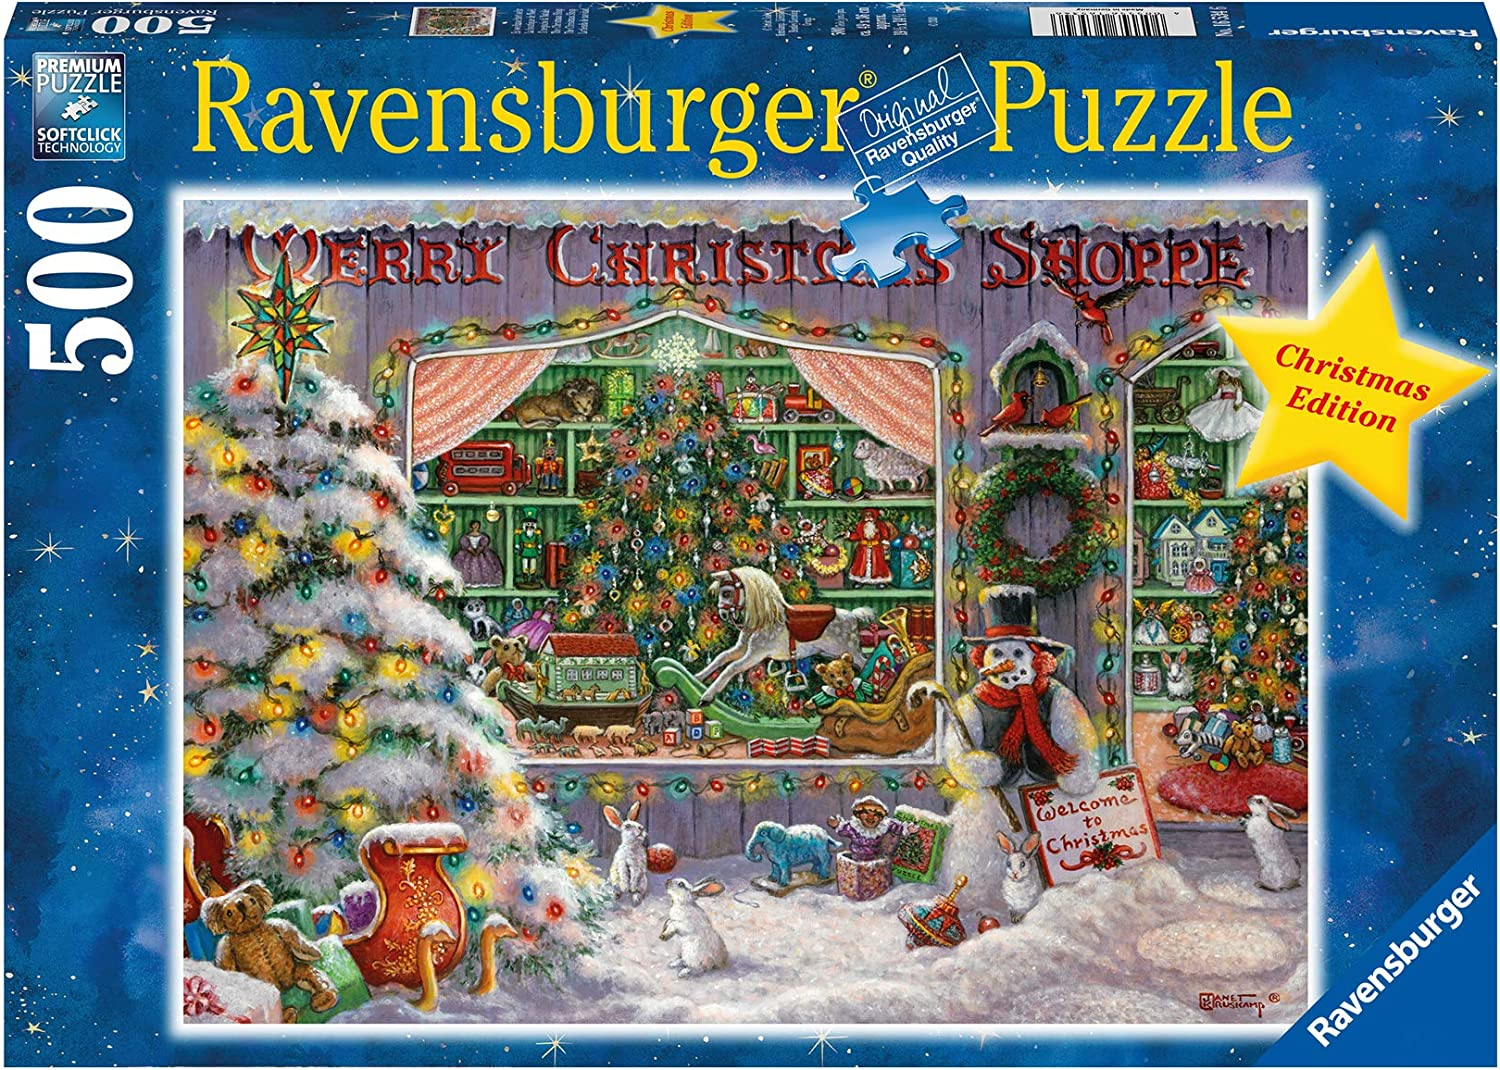 Ravensburger The Christmas Shop500 Piece Jigsaw Puzzle for Adults - Every Piece is Unique, Softclick Technology Means Pieces Fit Together Perfectly, 16534